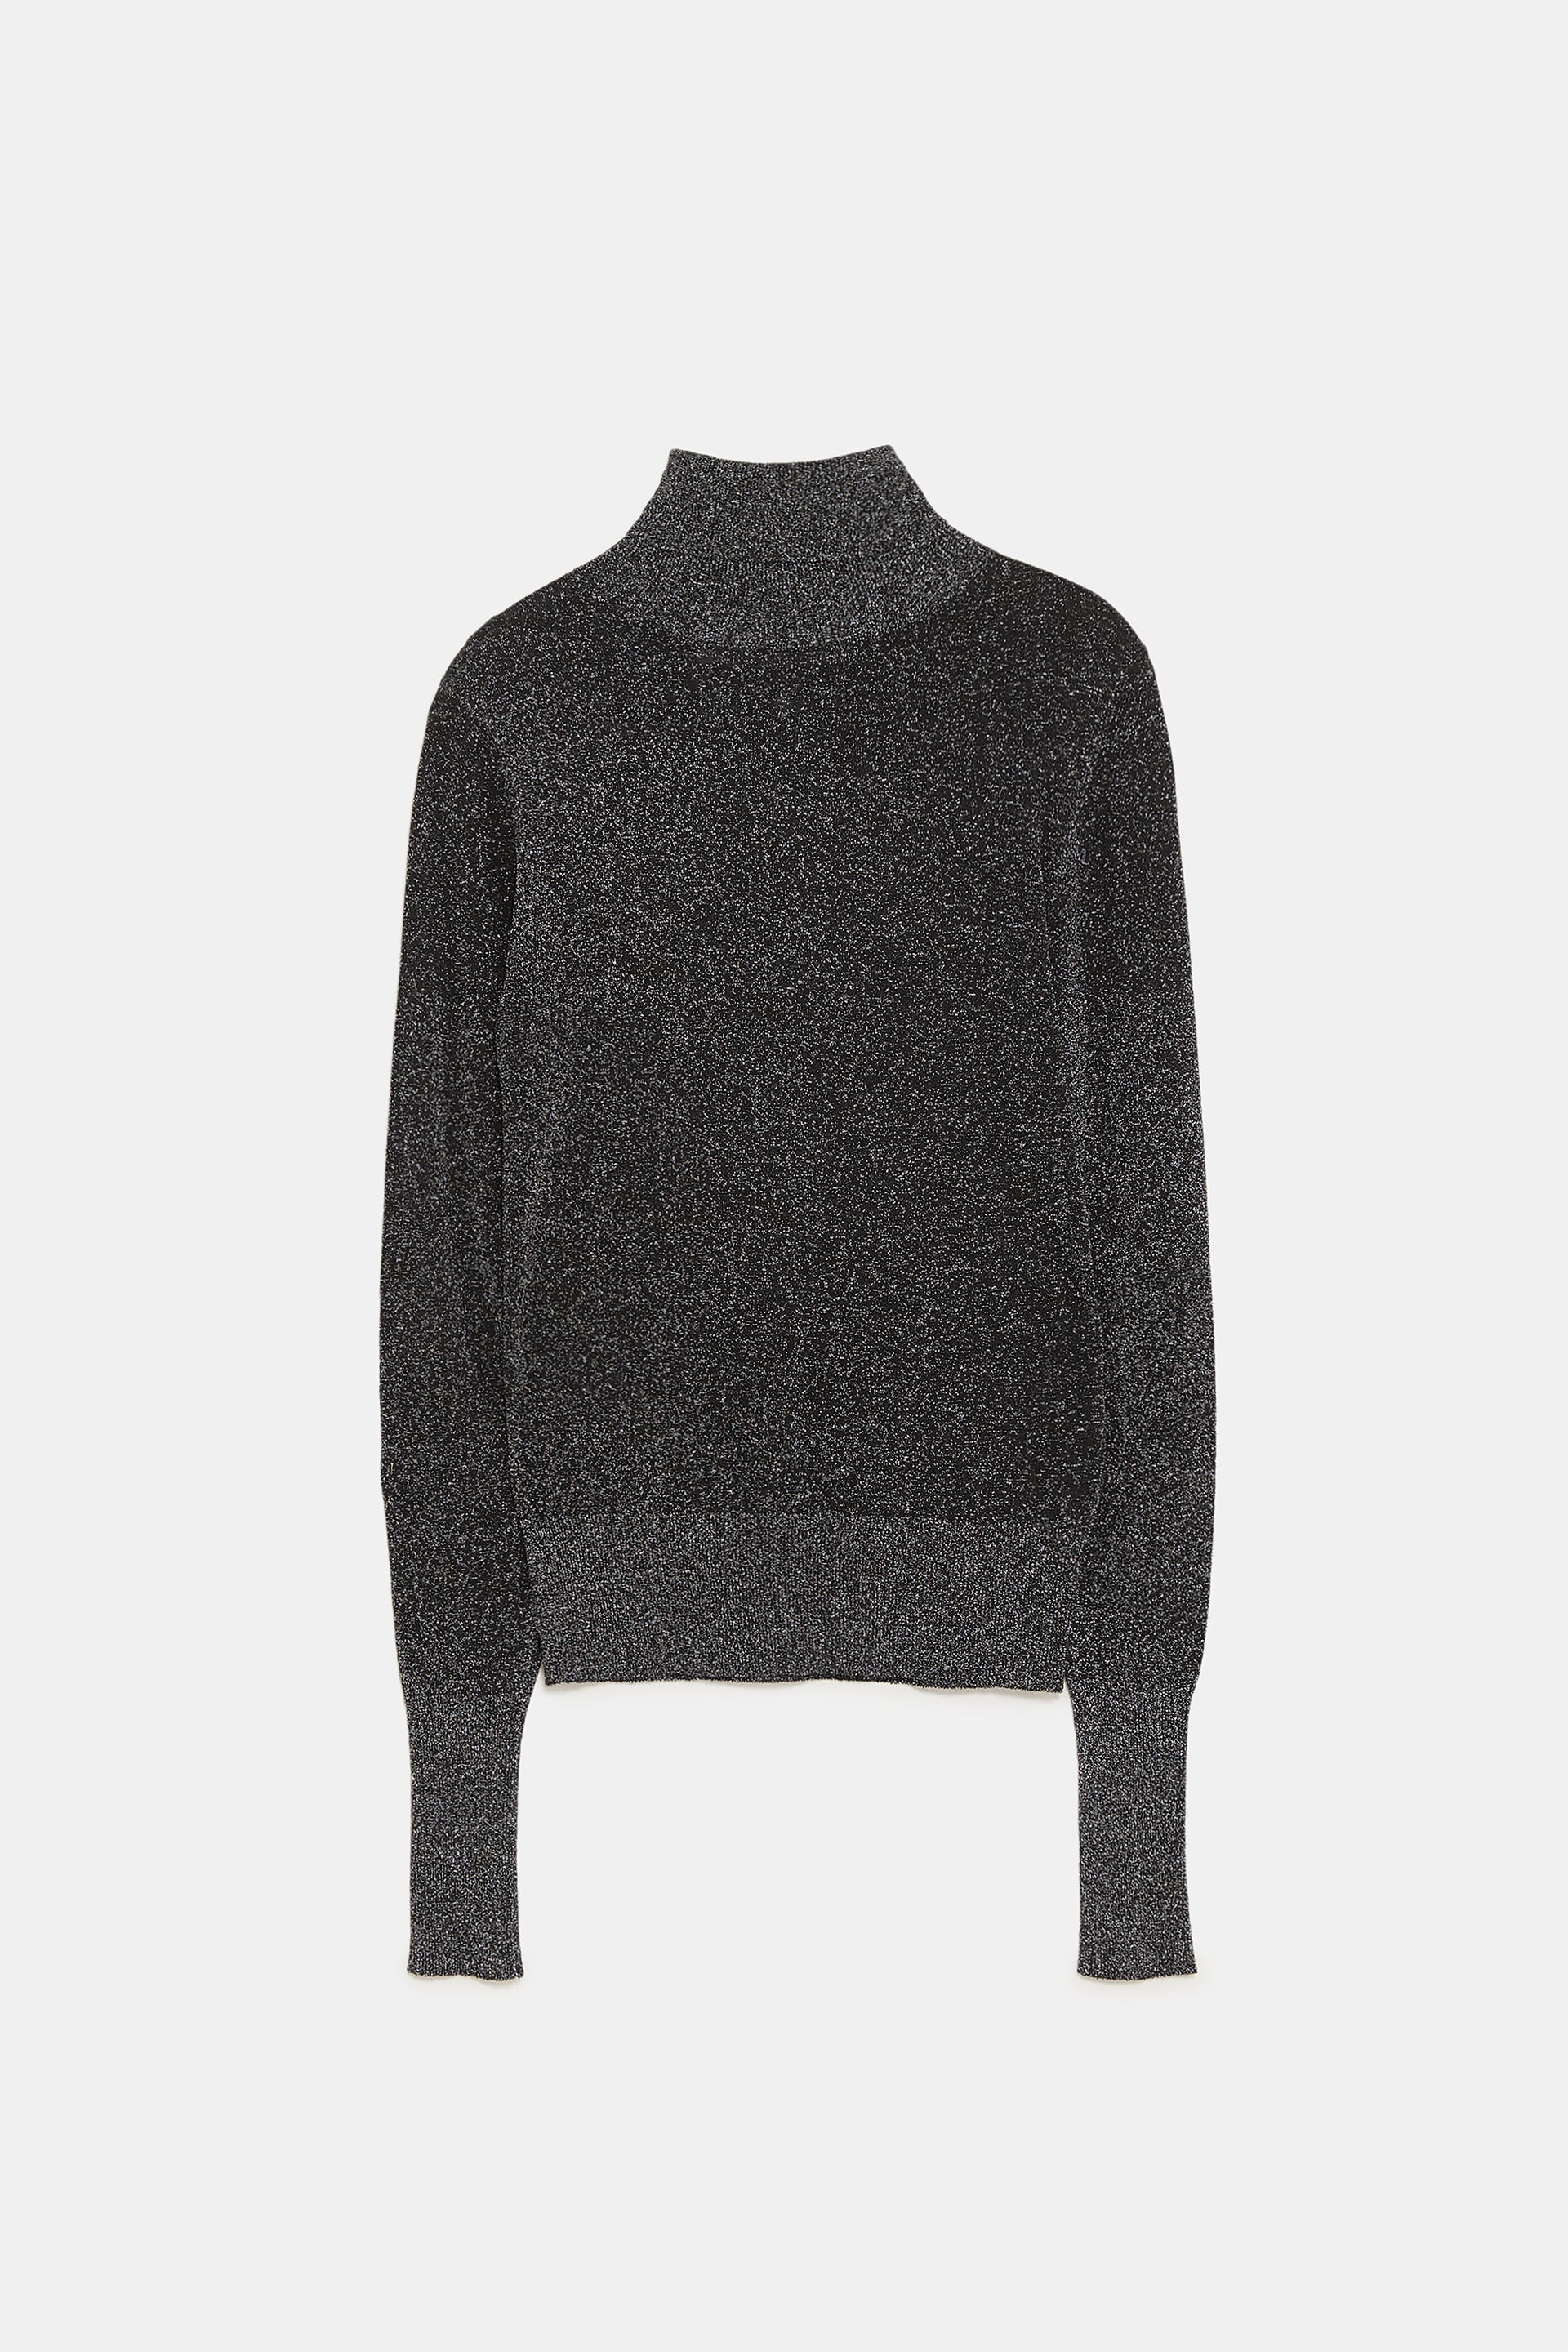 edf44816b Zara Metallic Turtleneck